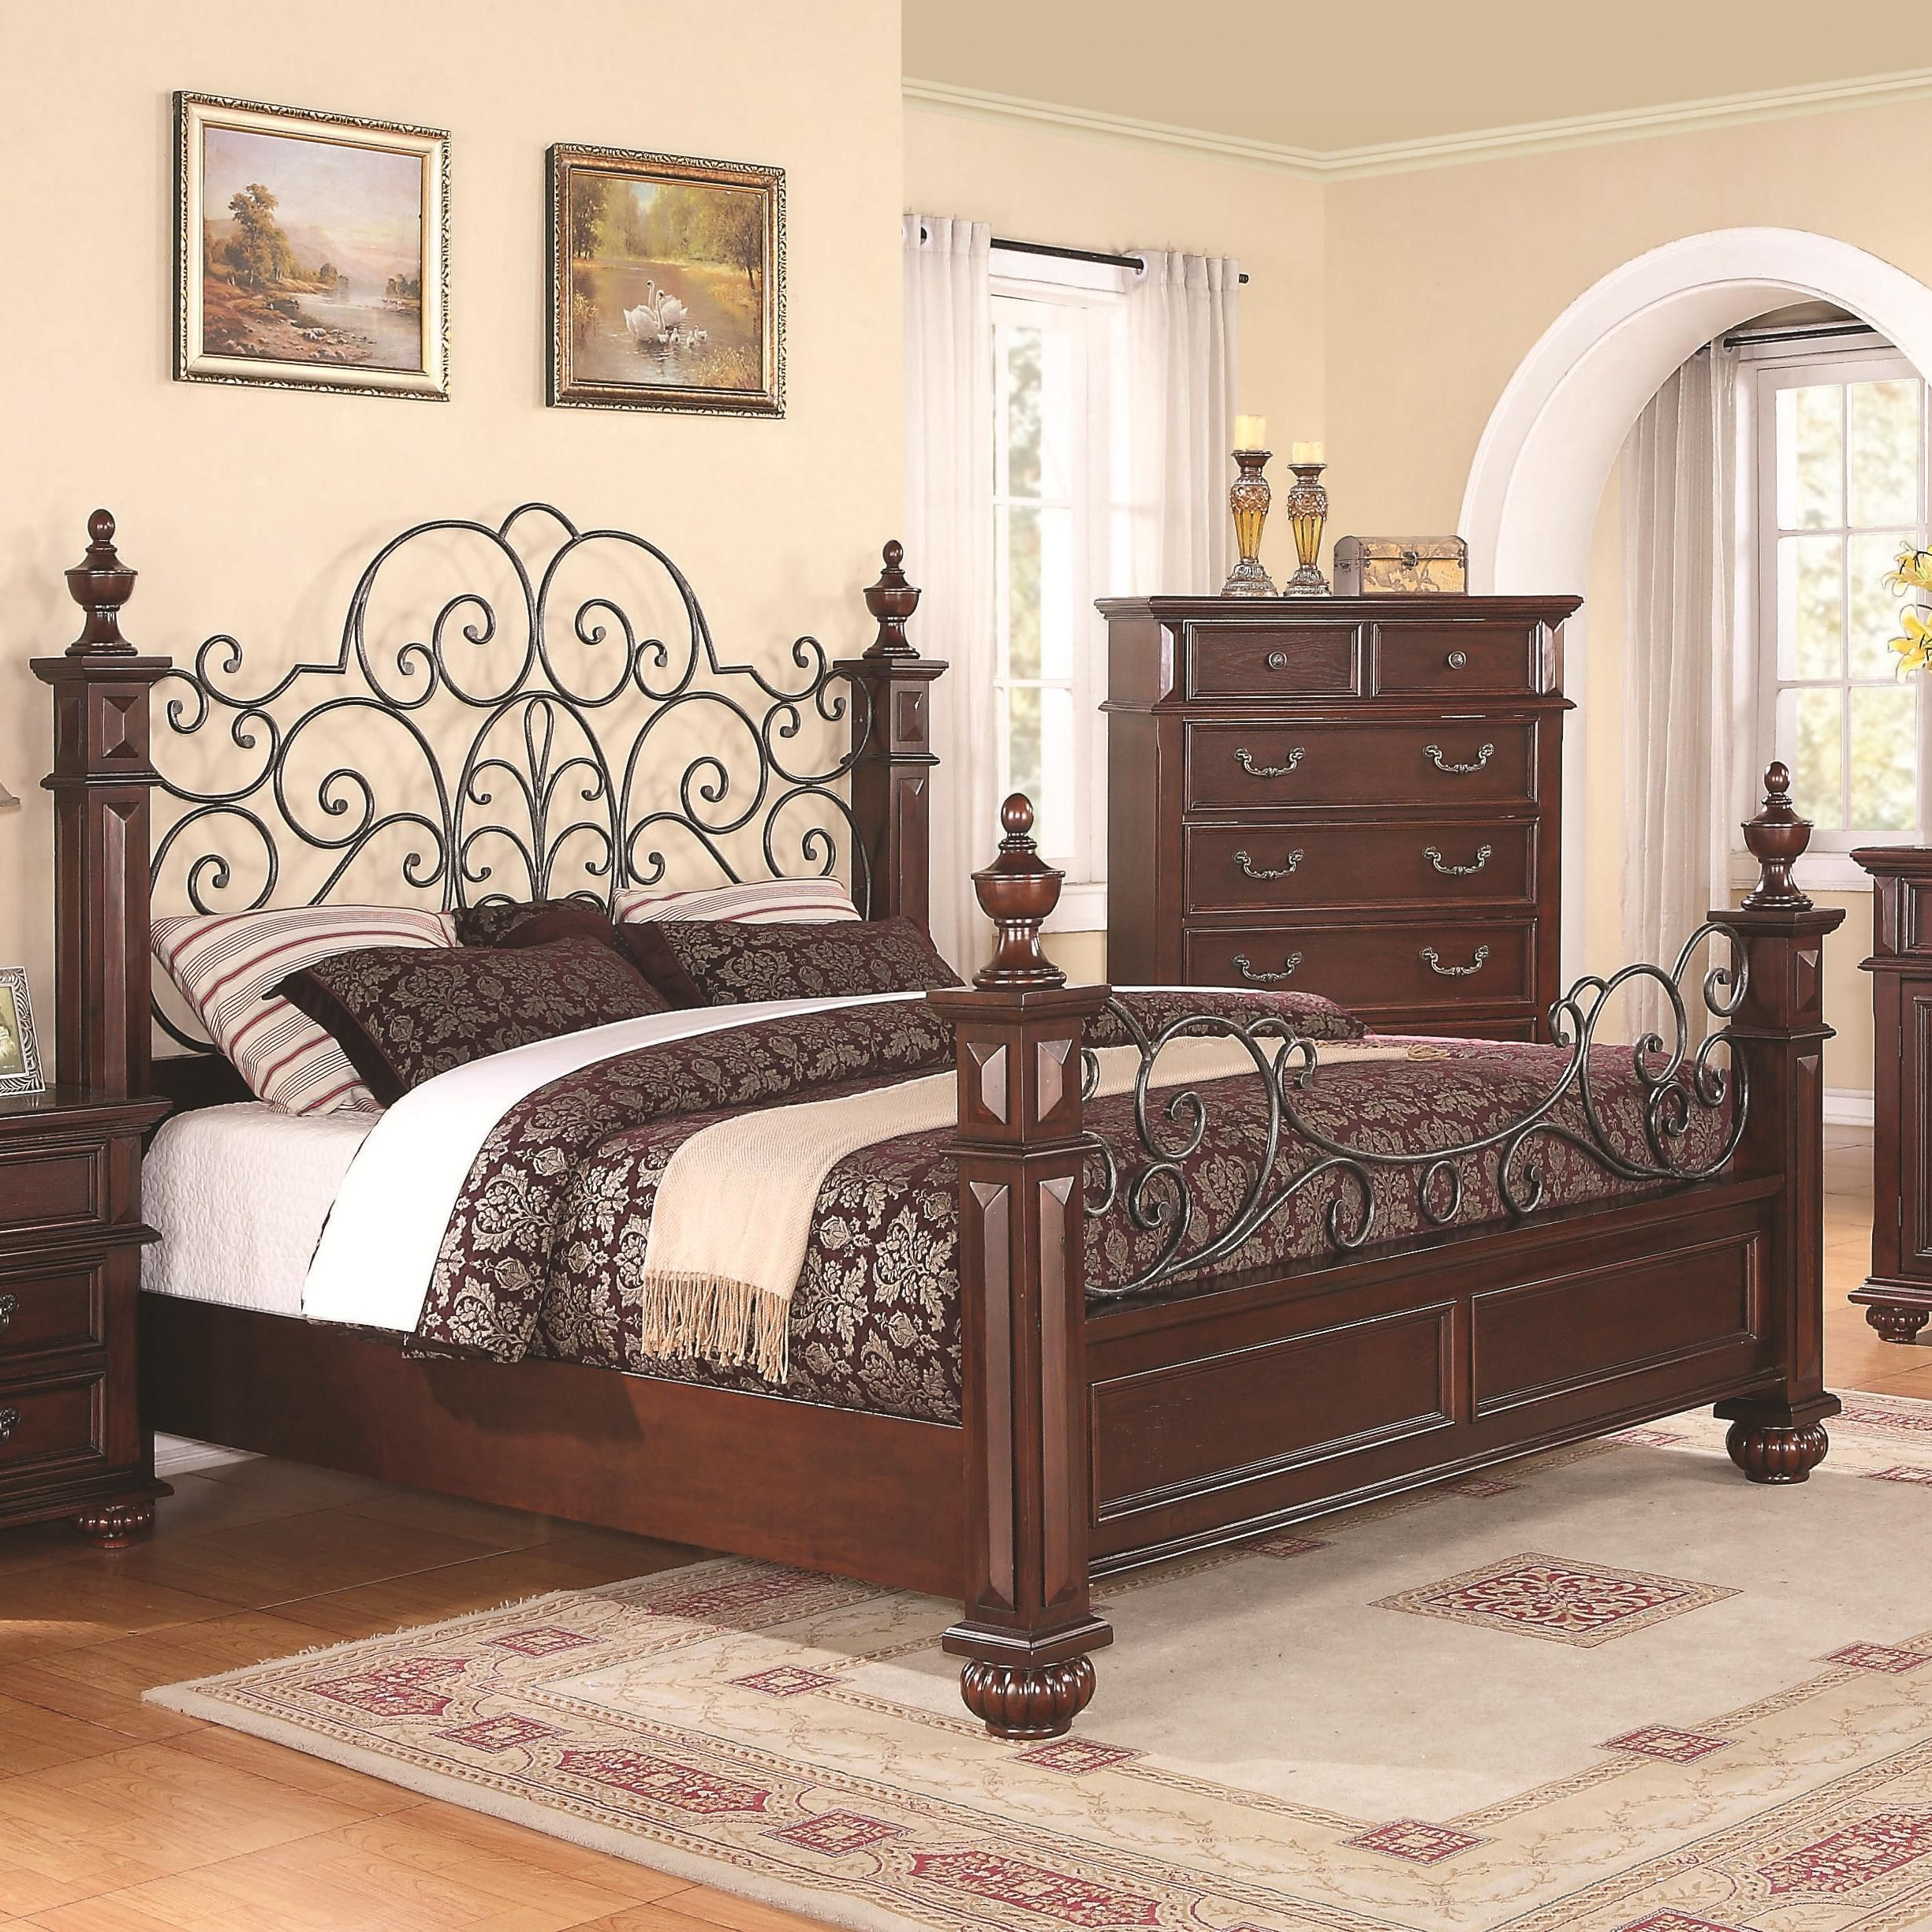 Low wood wrought iron king size bed dream home for Iron bedroom furniture